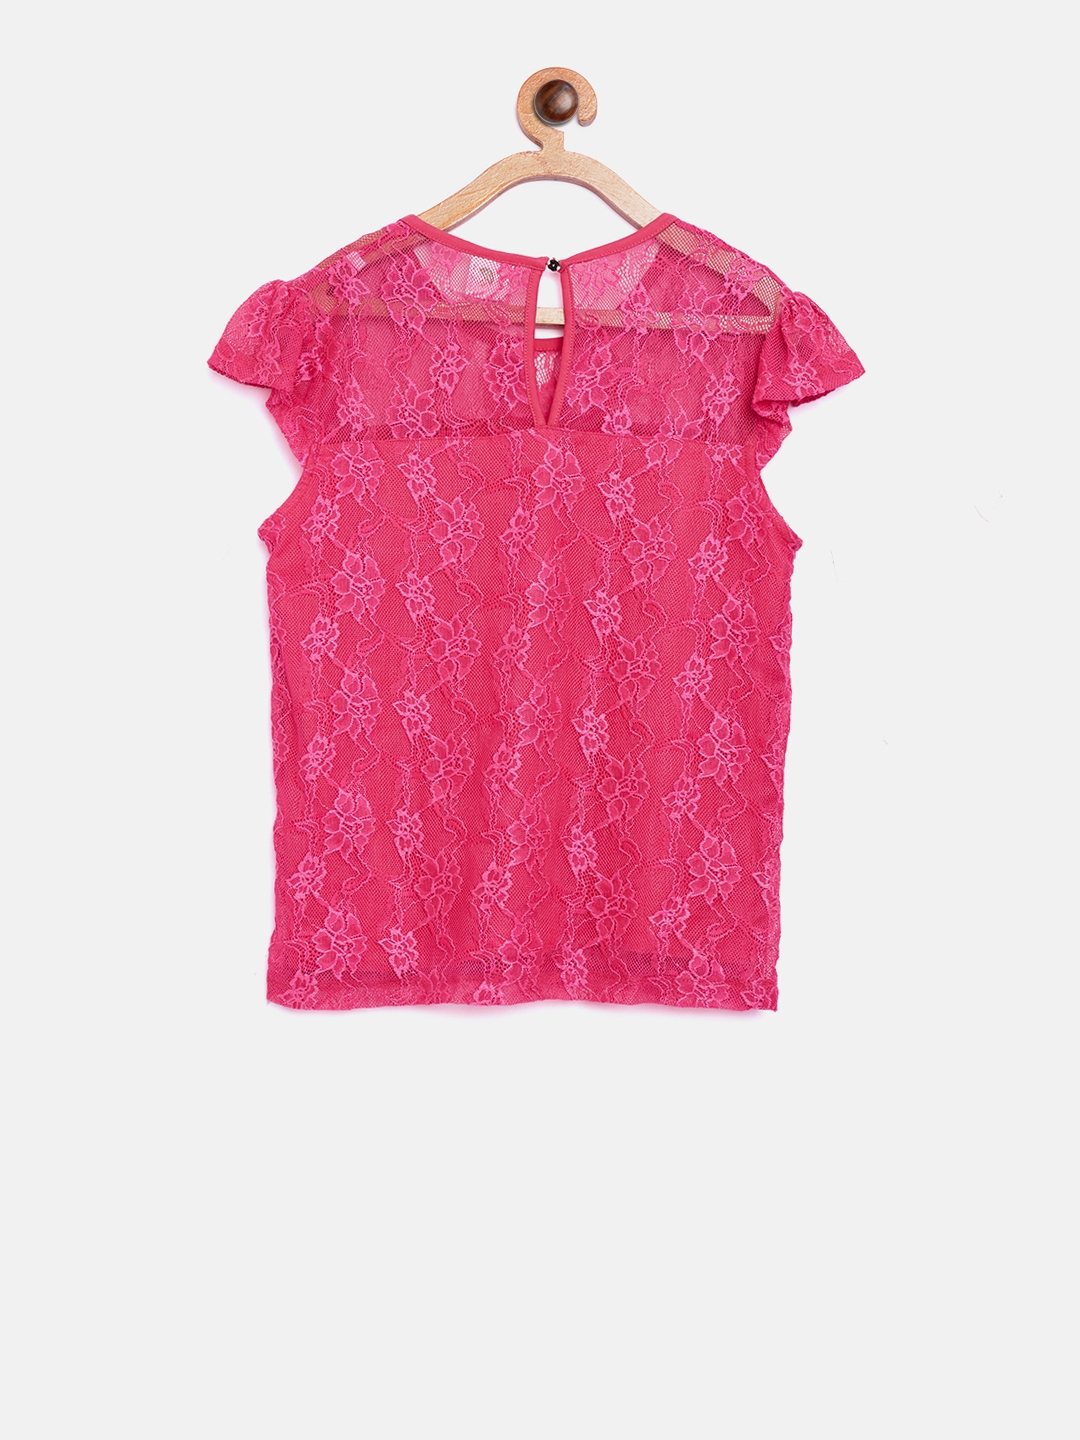 6d43fcc7d1ee57 Buy 612 League Girls Pink Lace Top - Tops for Girls 7156229